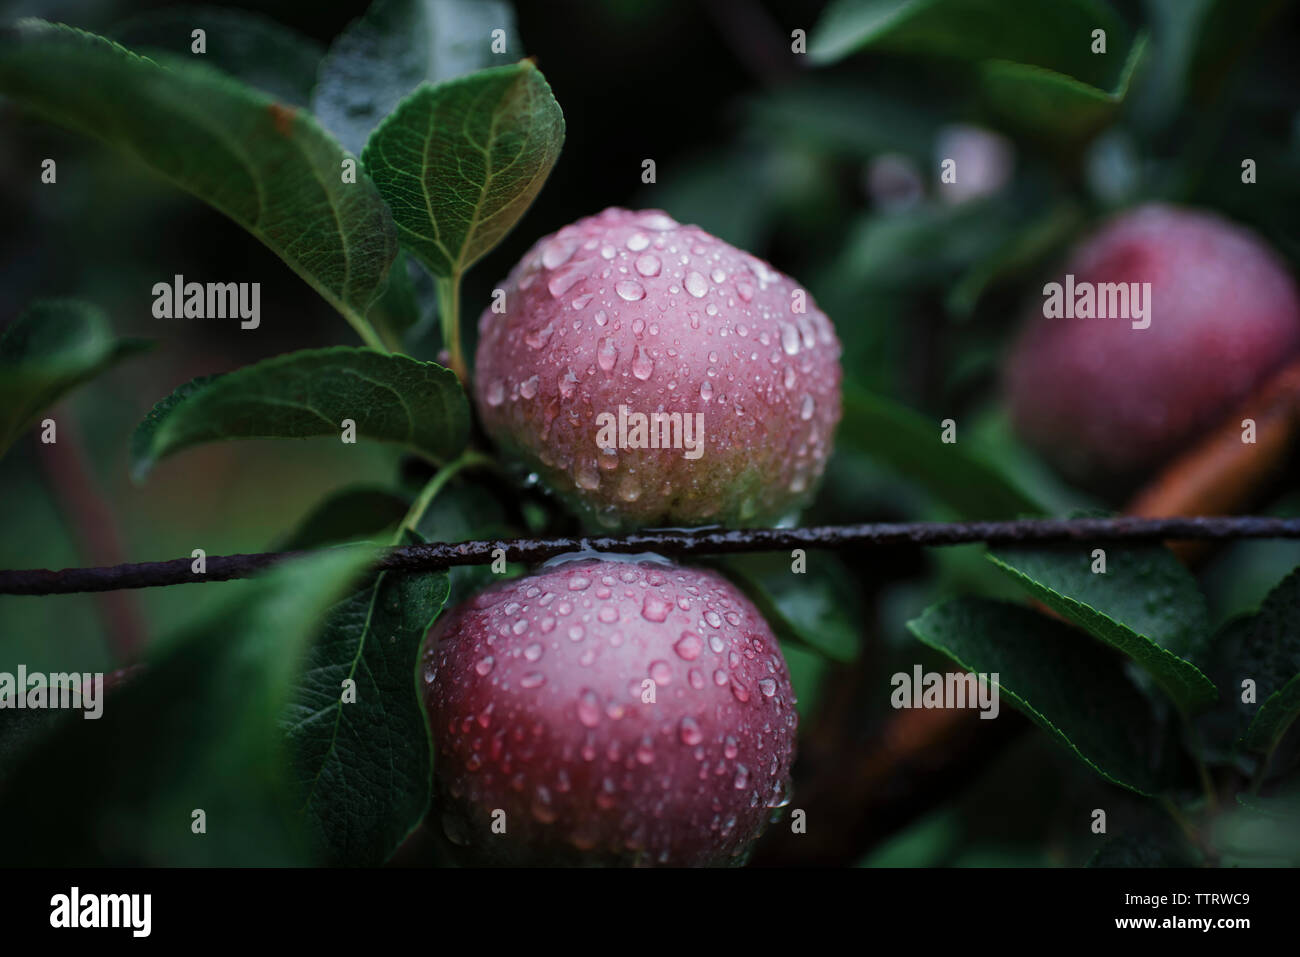 Close-up of wet apples growing on fruit tree - Stock Image